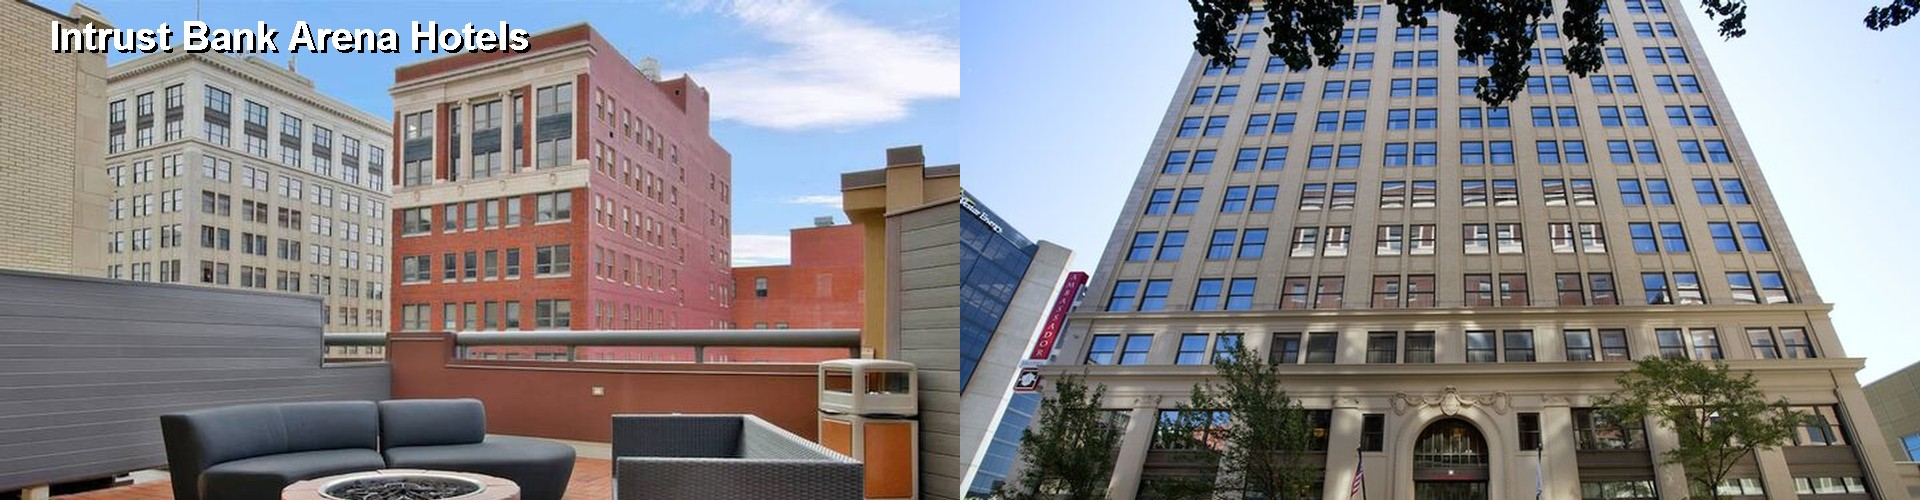 $41+ Hotels Near Intrust Bank Arena in Wichita (KS)